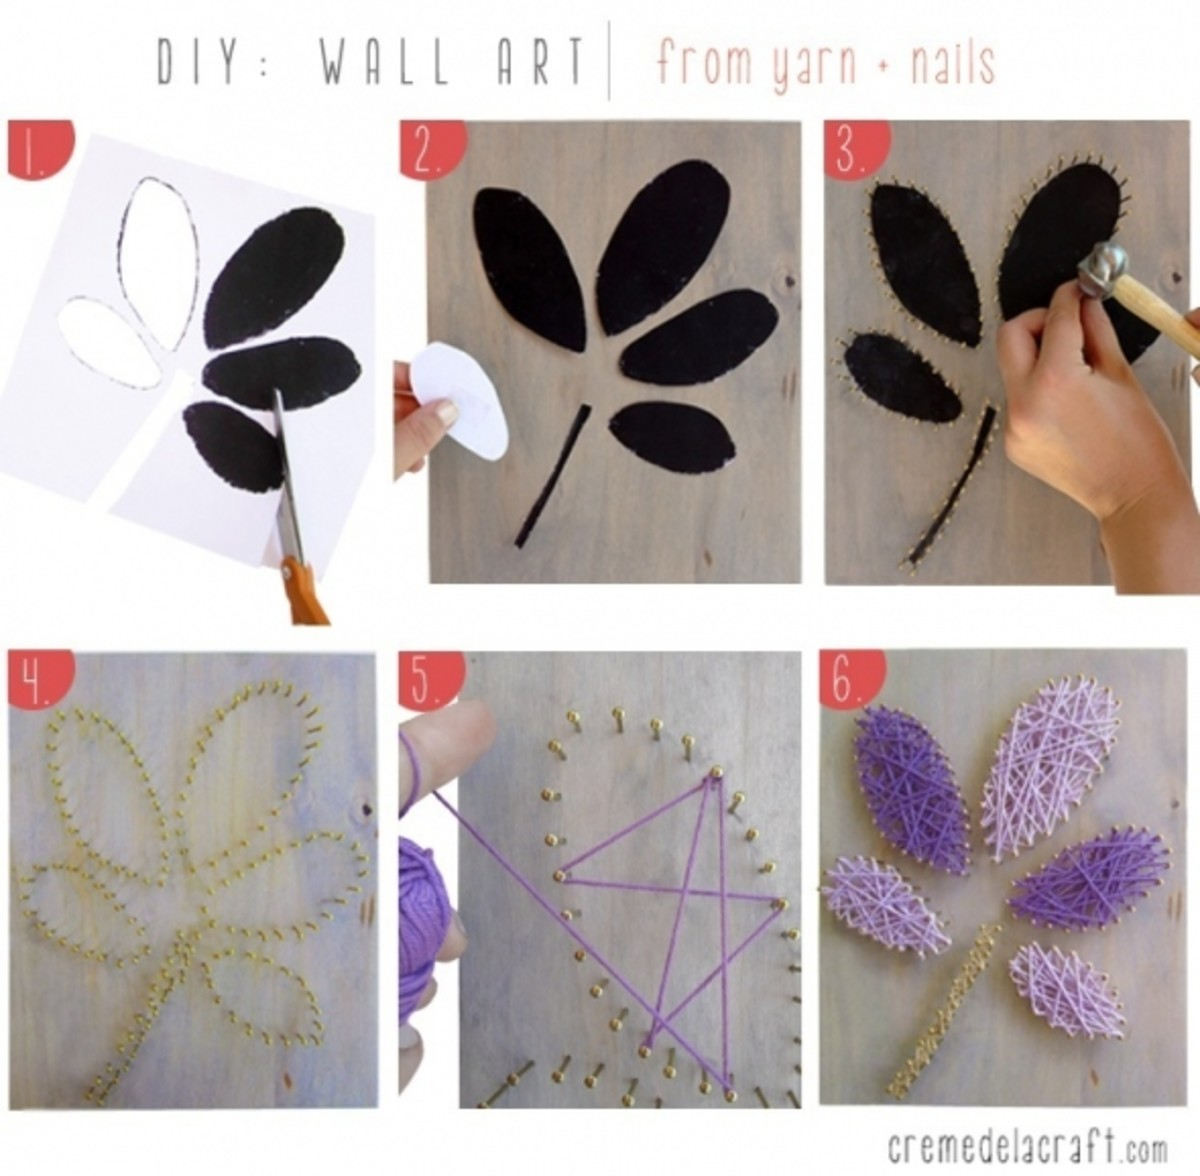 Directions for yarn art project - 1. Cut out pattern. 2. Put a piece of double-stick tape on the back of each pattern piece. 3. Position the pattern on the substrate of your choice. 4. Use hammer to nail in small nails, following the pattern. 5. Remo